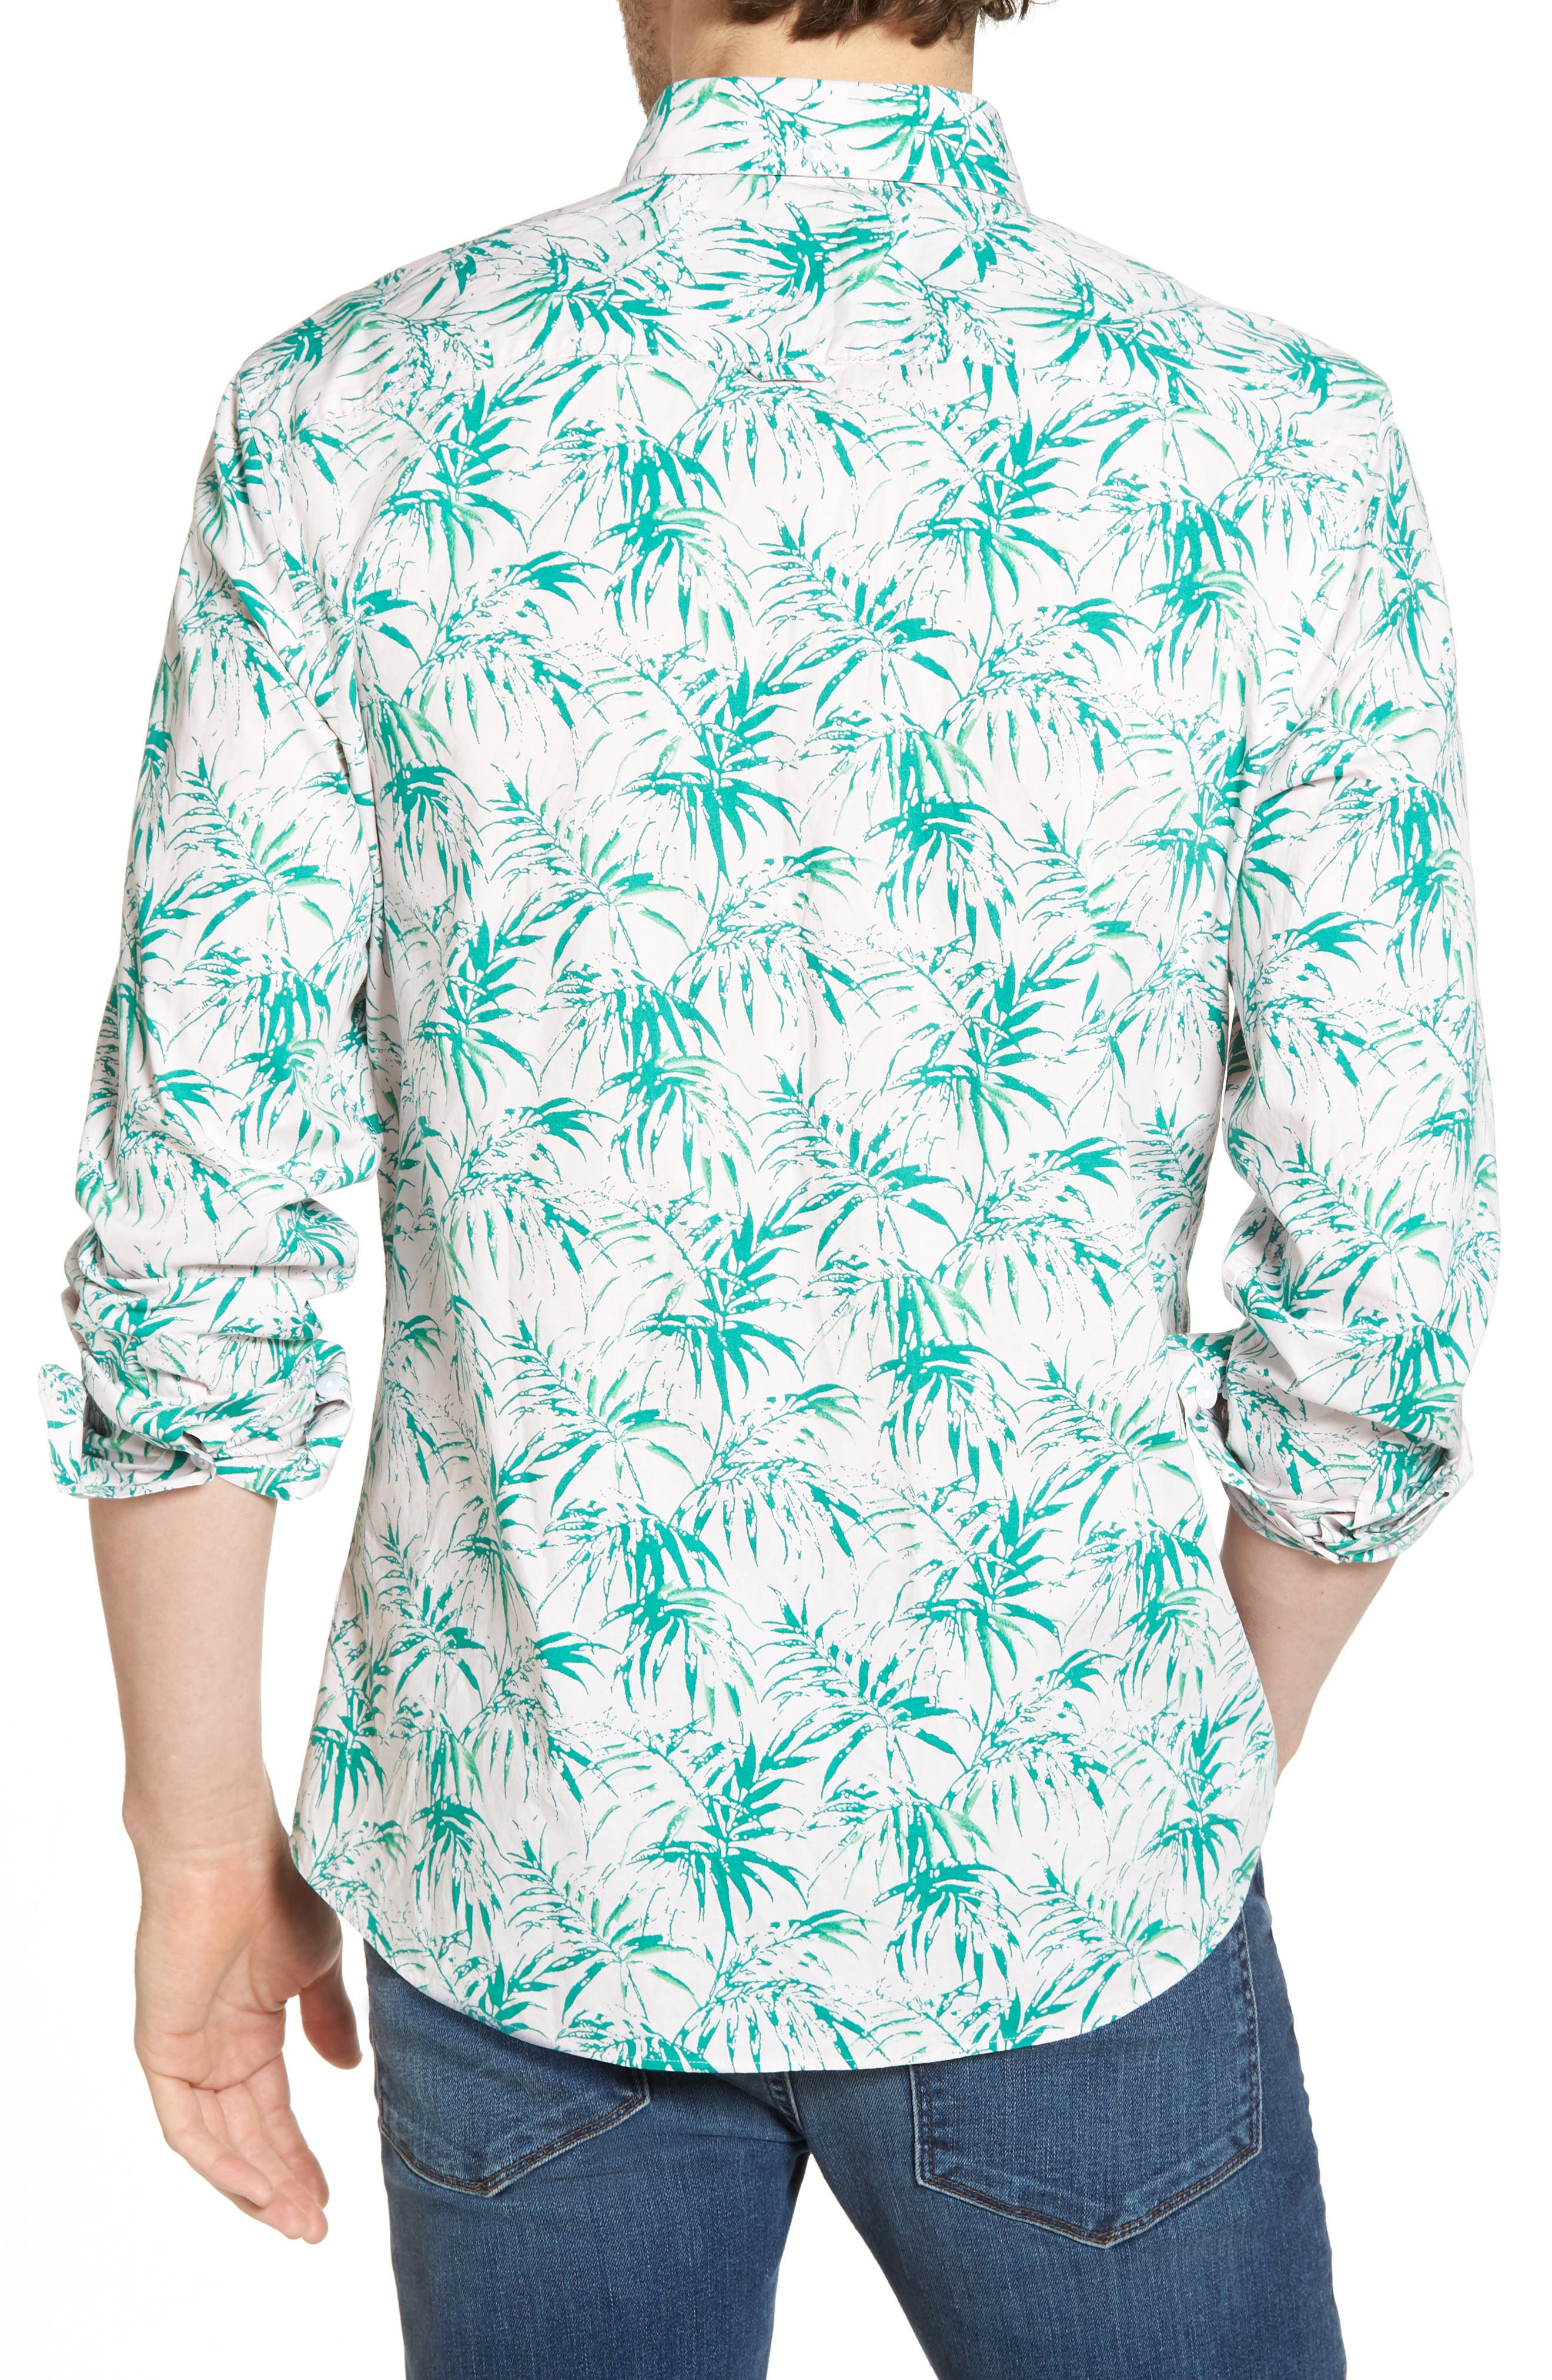 Trim Fit Palm Print Sport Shirt,                             Alternate thumbnail 3, color,                             Pink Green Stamped Palms